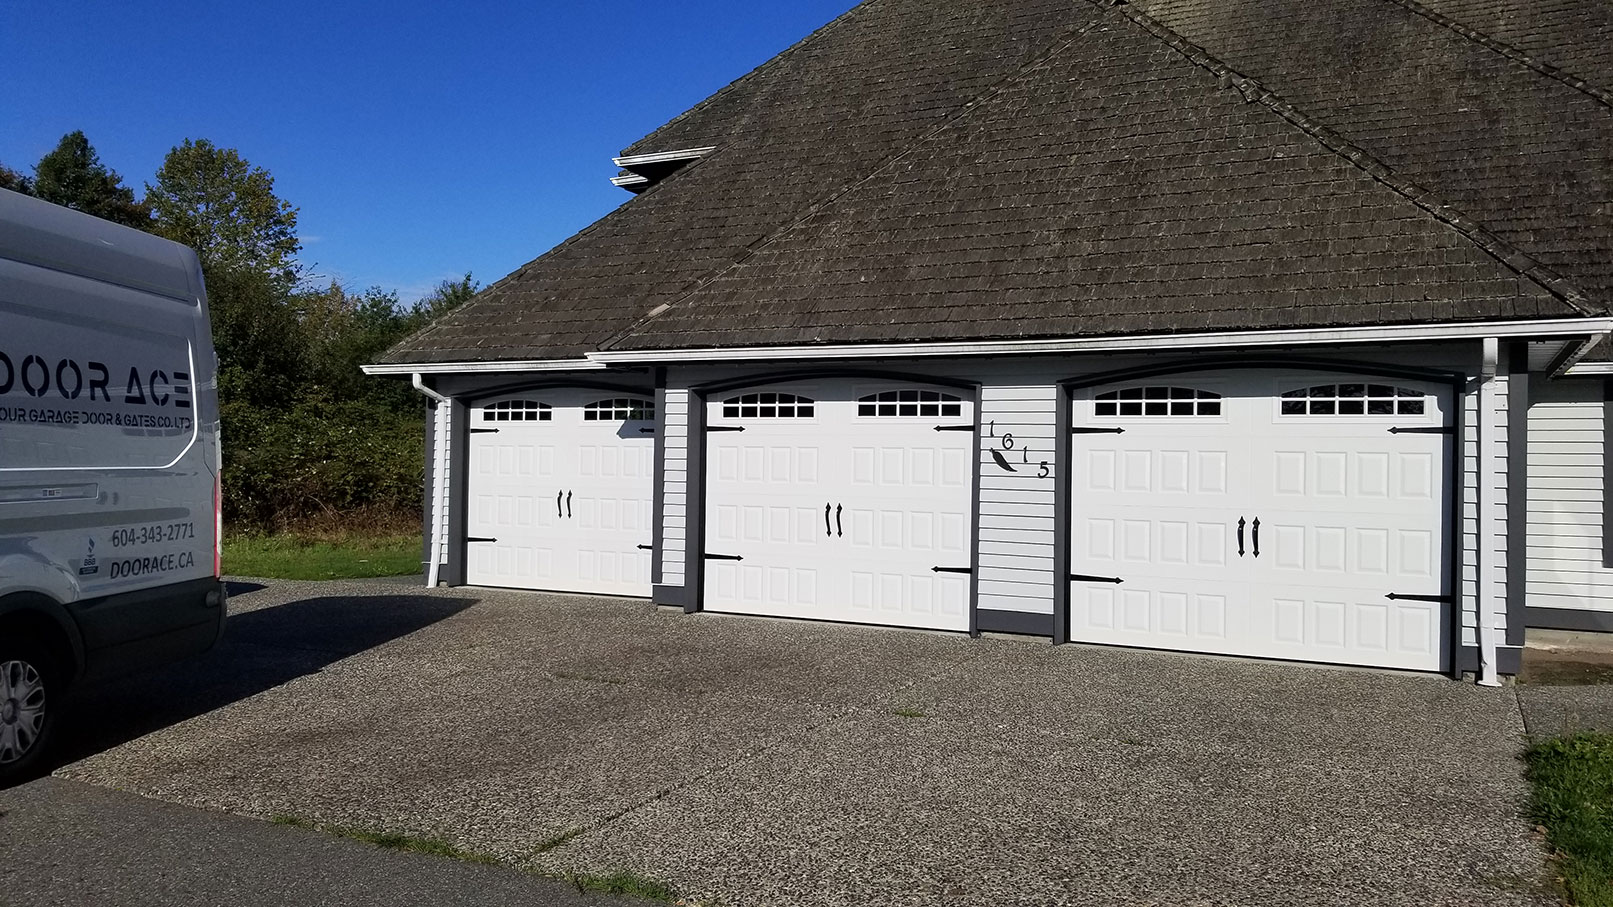 2 Triple Garage Door on Home Install After